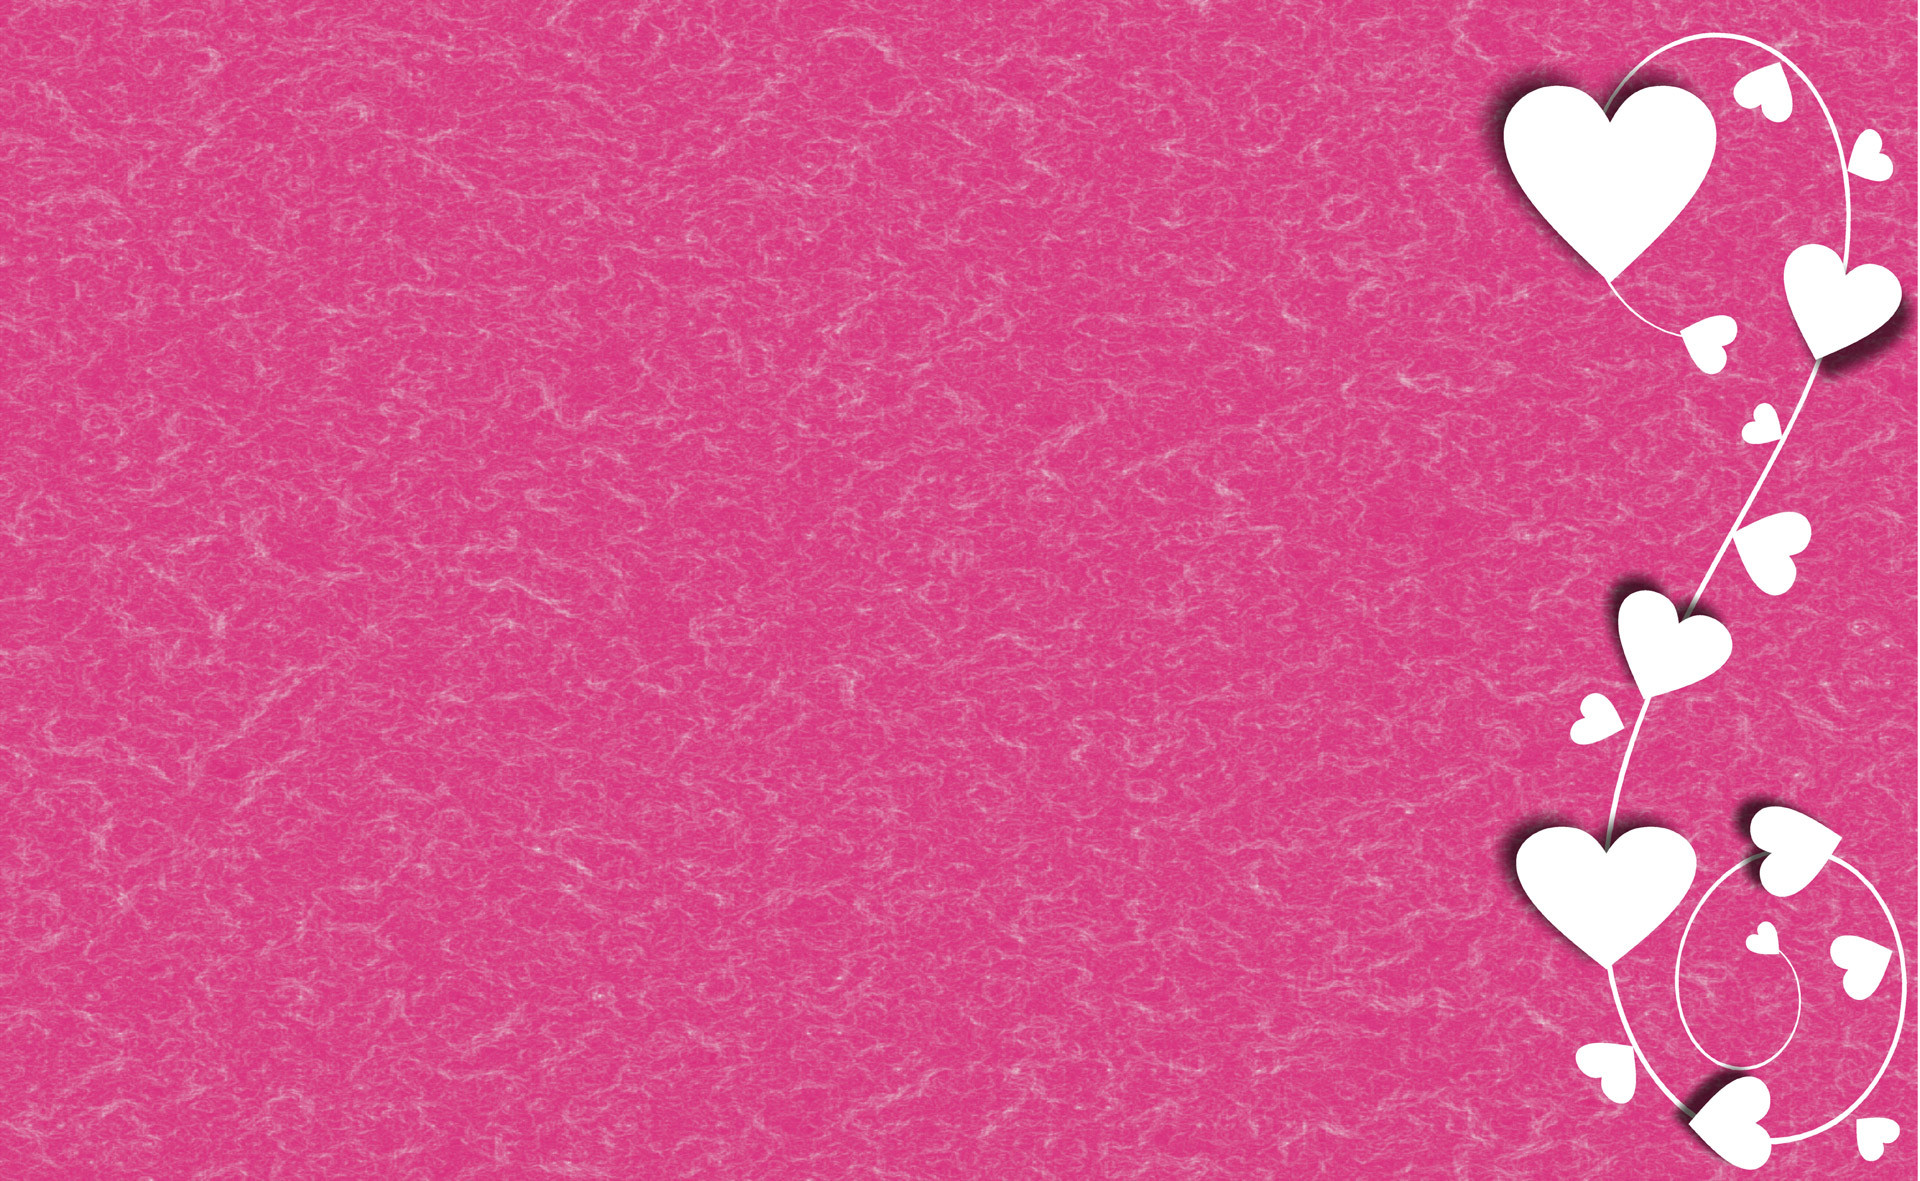 Pink hearts background wallpapertag - Heart to heart wallpaper ...